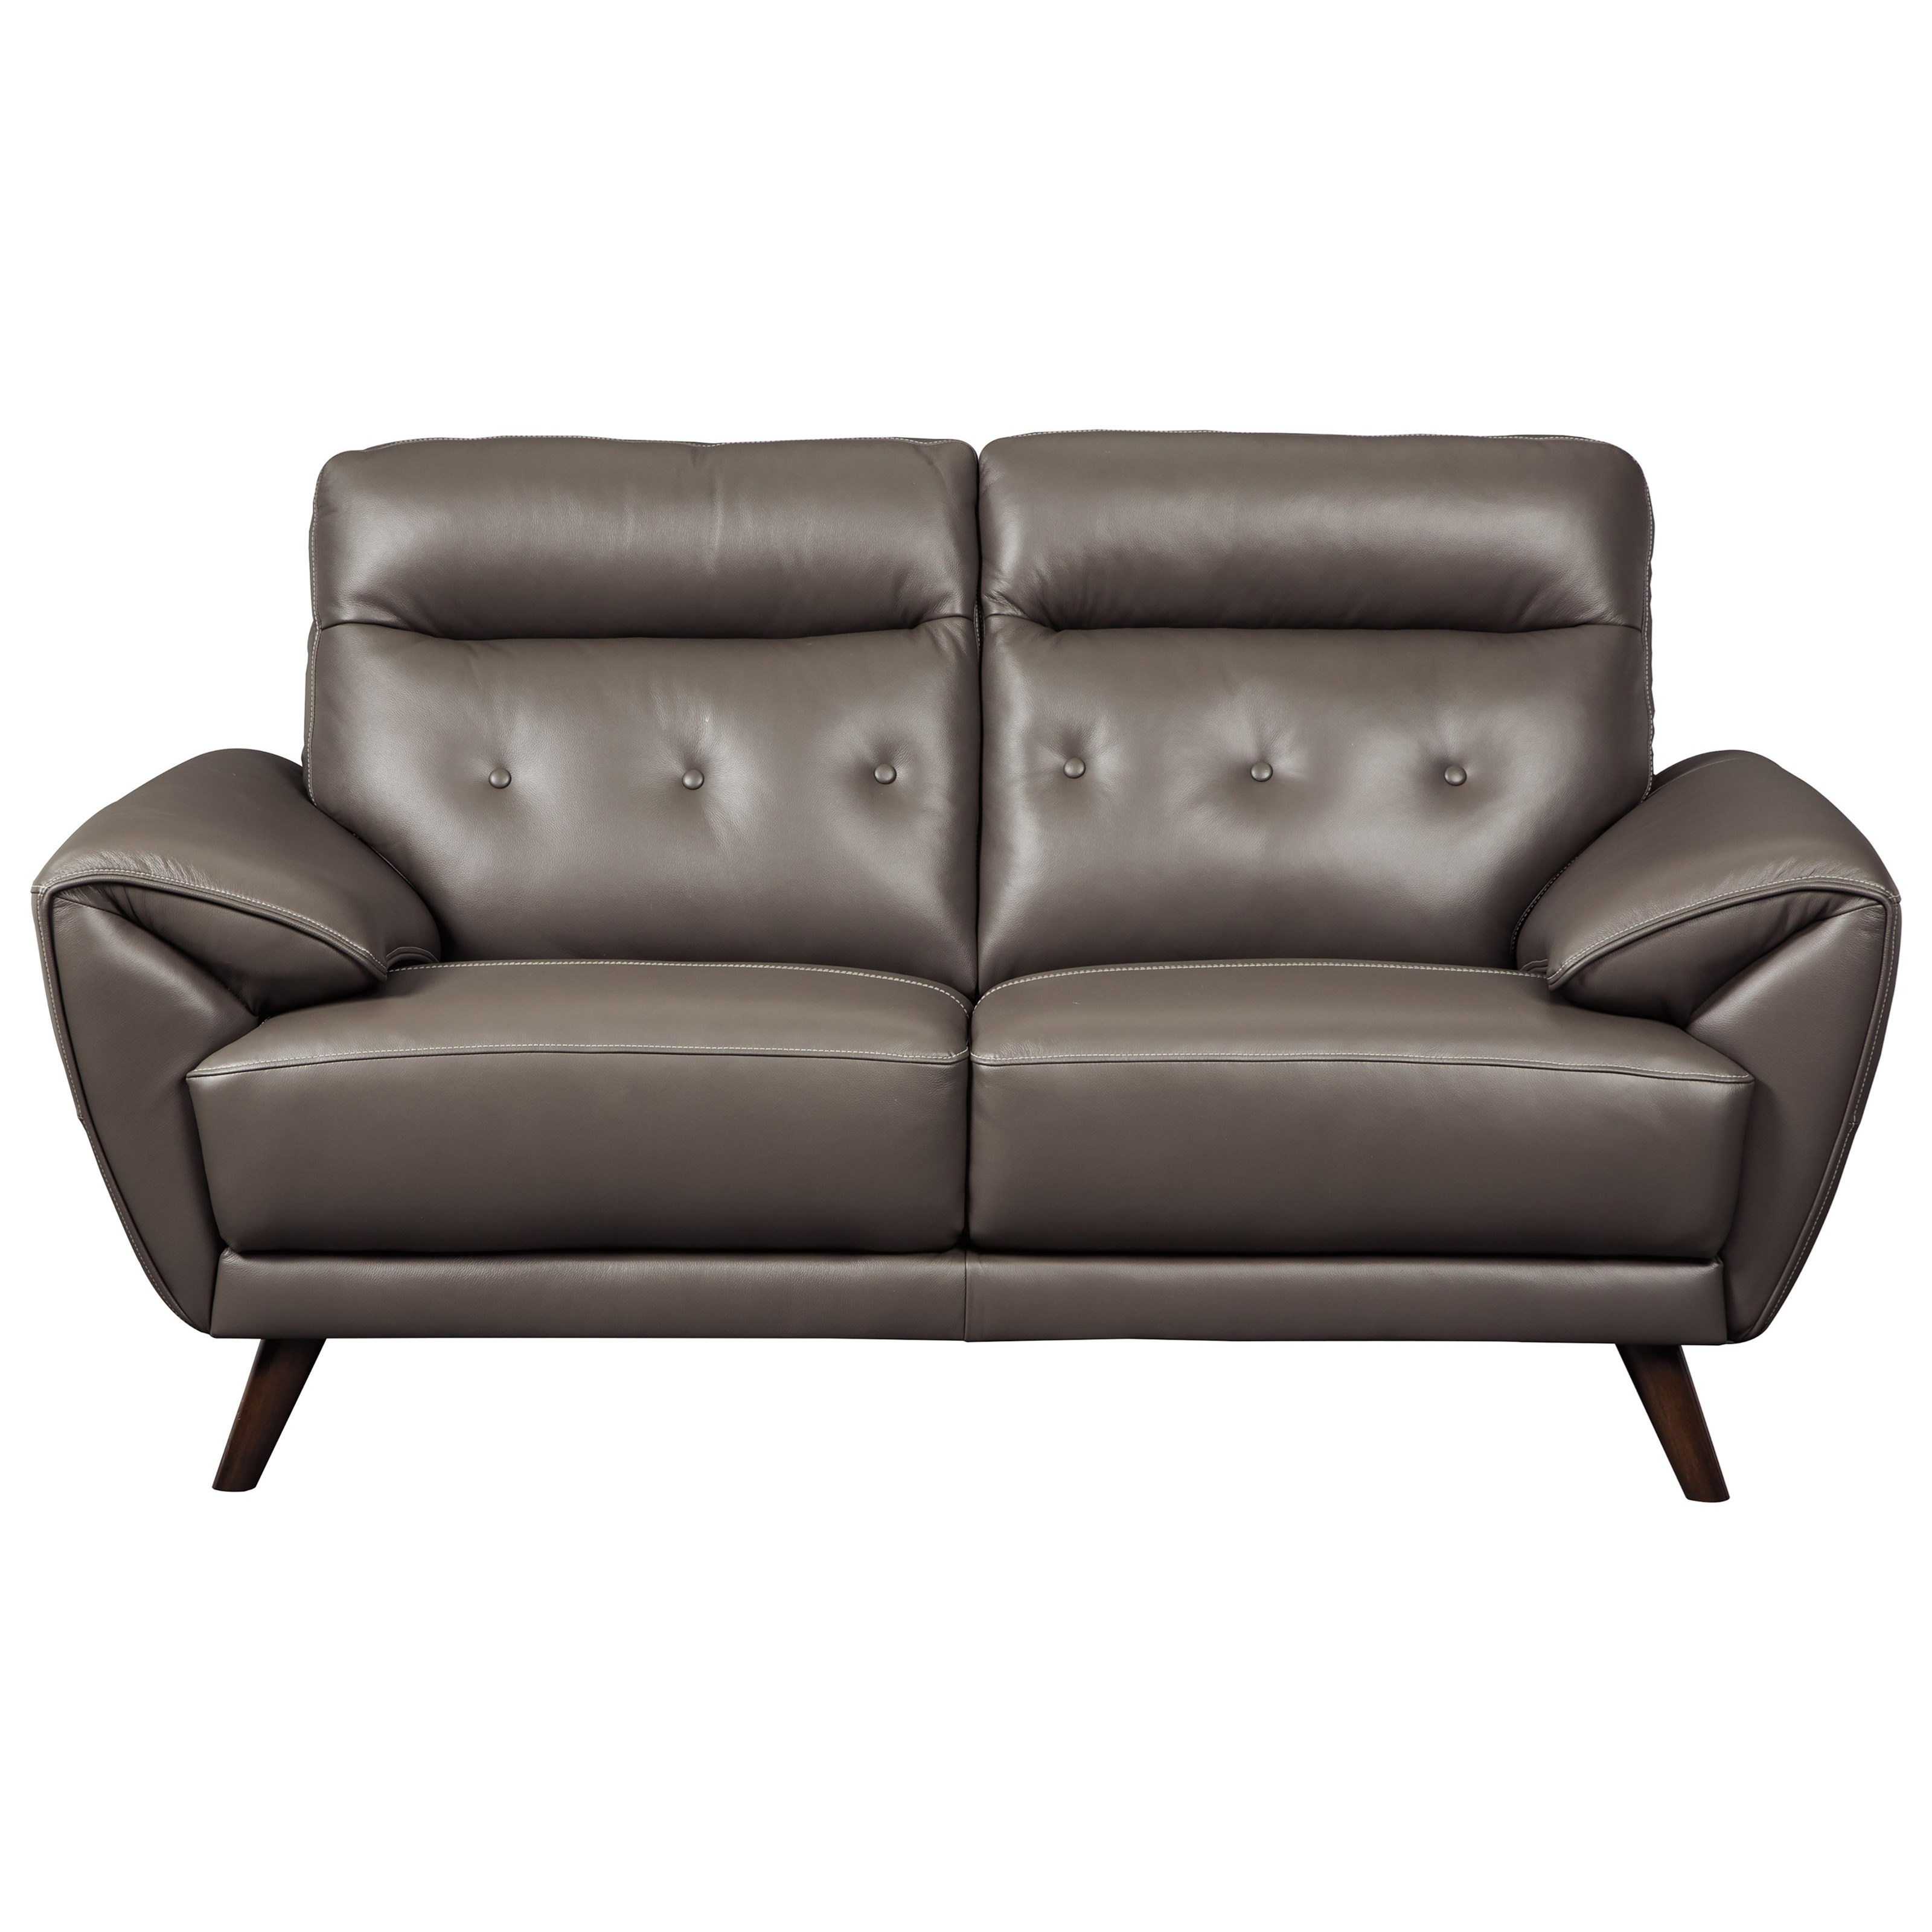 Swell Contemporary Leather Match Loveseat With Tufted Back By Andrewgaddart Wooden Chair Designs For Living Room Andrewgaddartcom